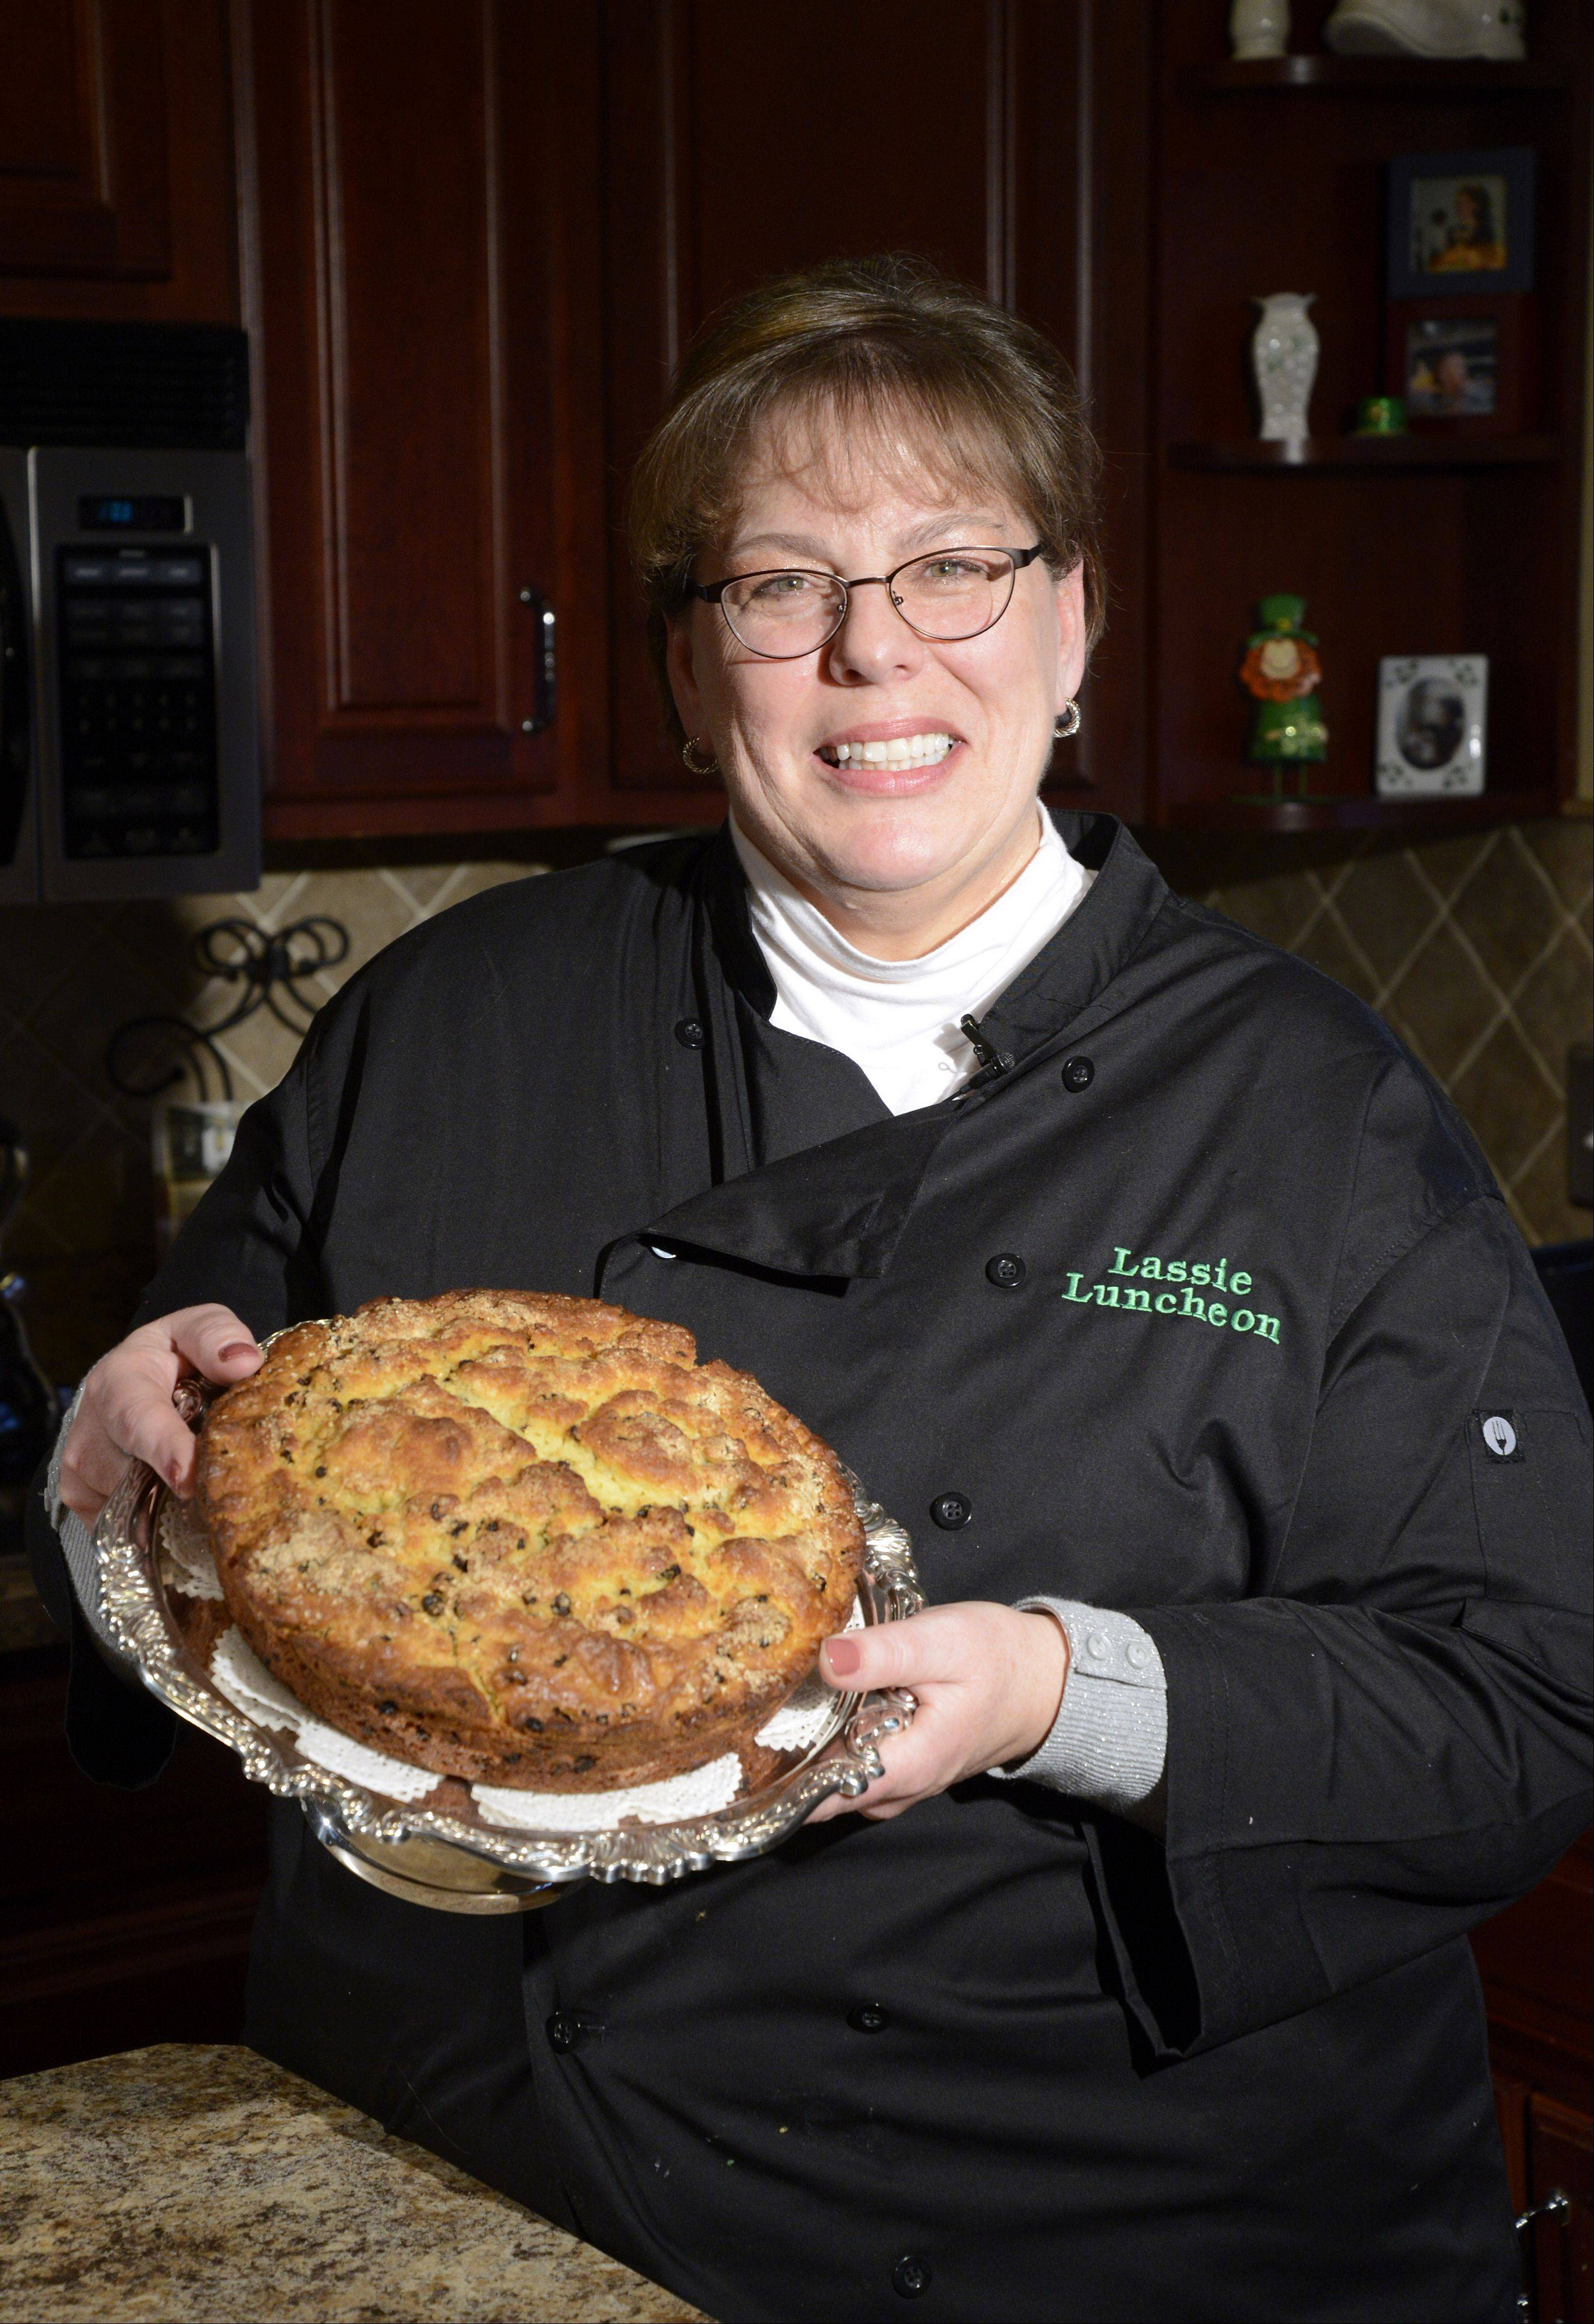 Margaret Mary Eklund has been making her family's Irish soda bread recipe for decades and shares it with friends and family on St. Patrick's Day.